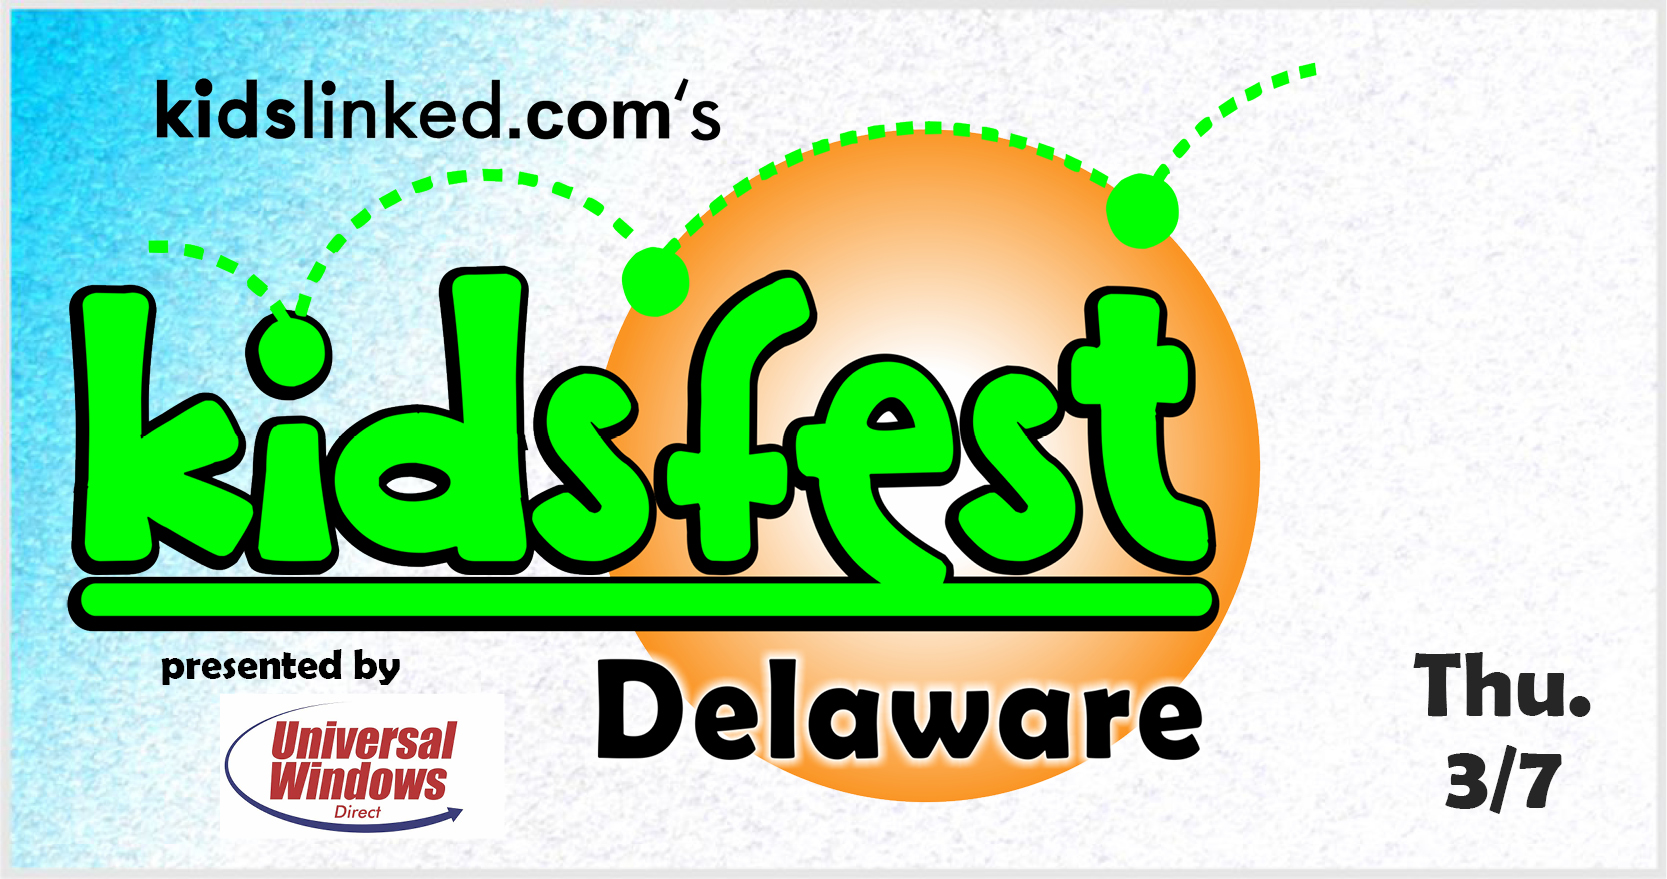 Delaware KidsFest 2019 presented by Universal Windows